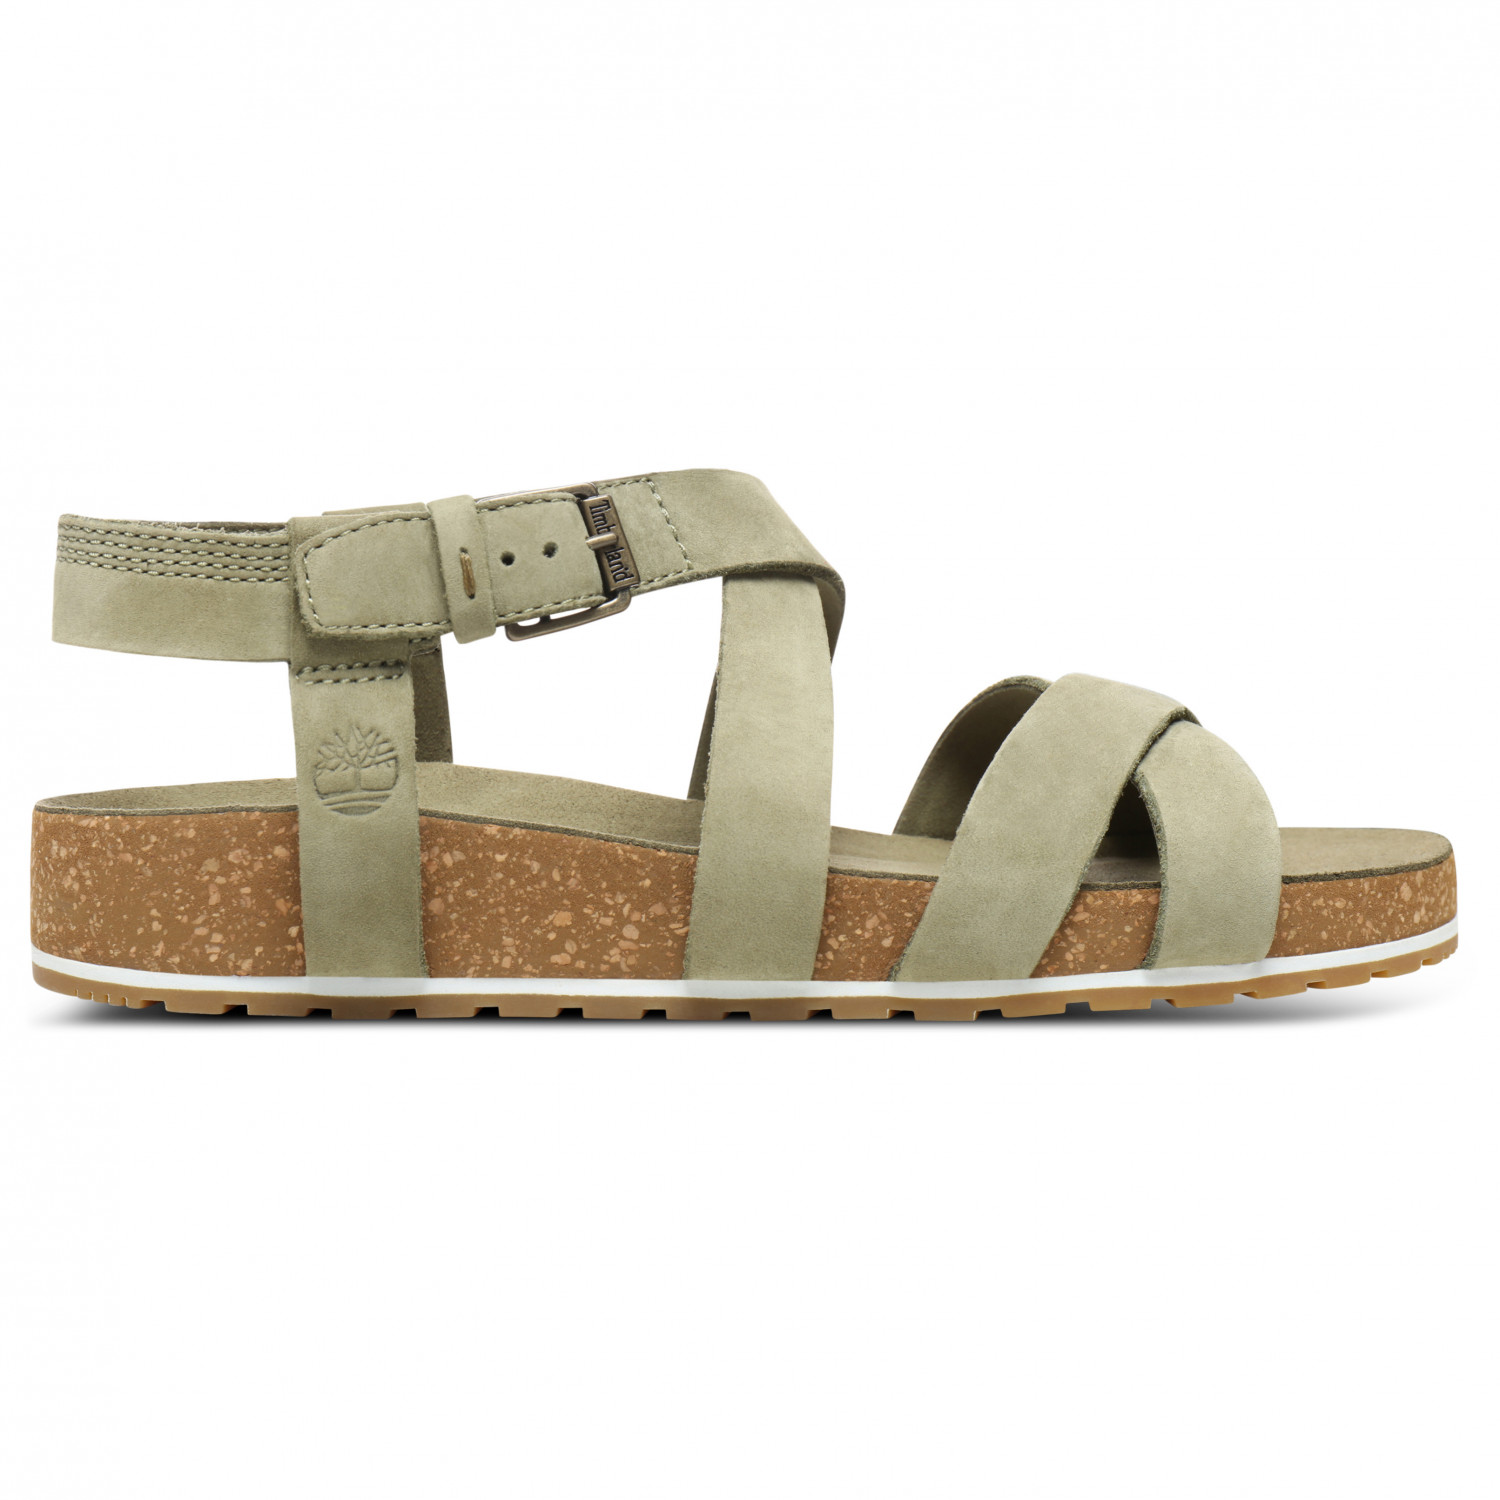 0c64f765d Timberland Malibu Waves Ankle Strap Sandal - Sandals Women's | Buy ...